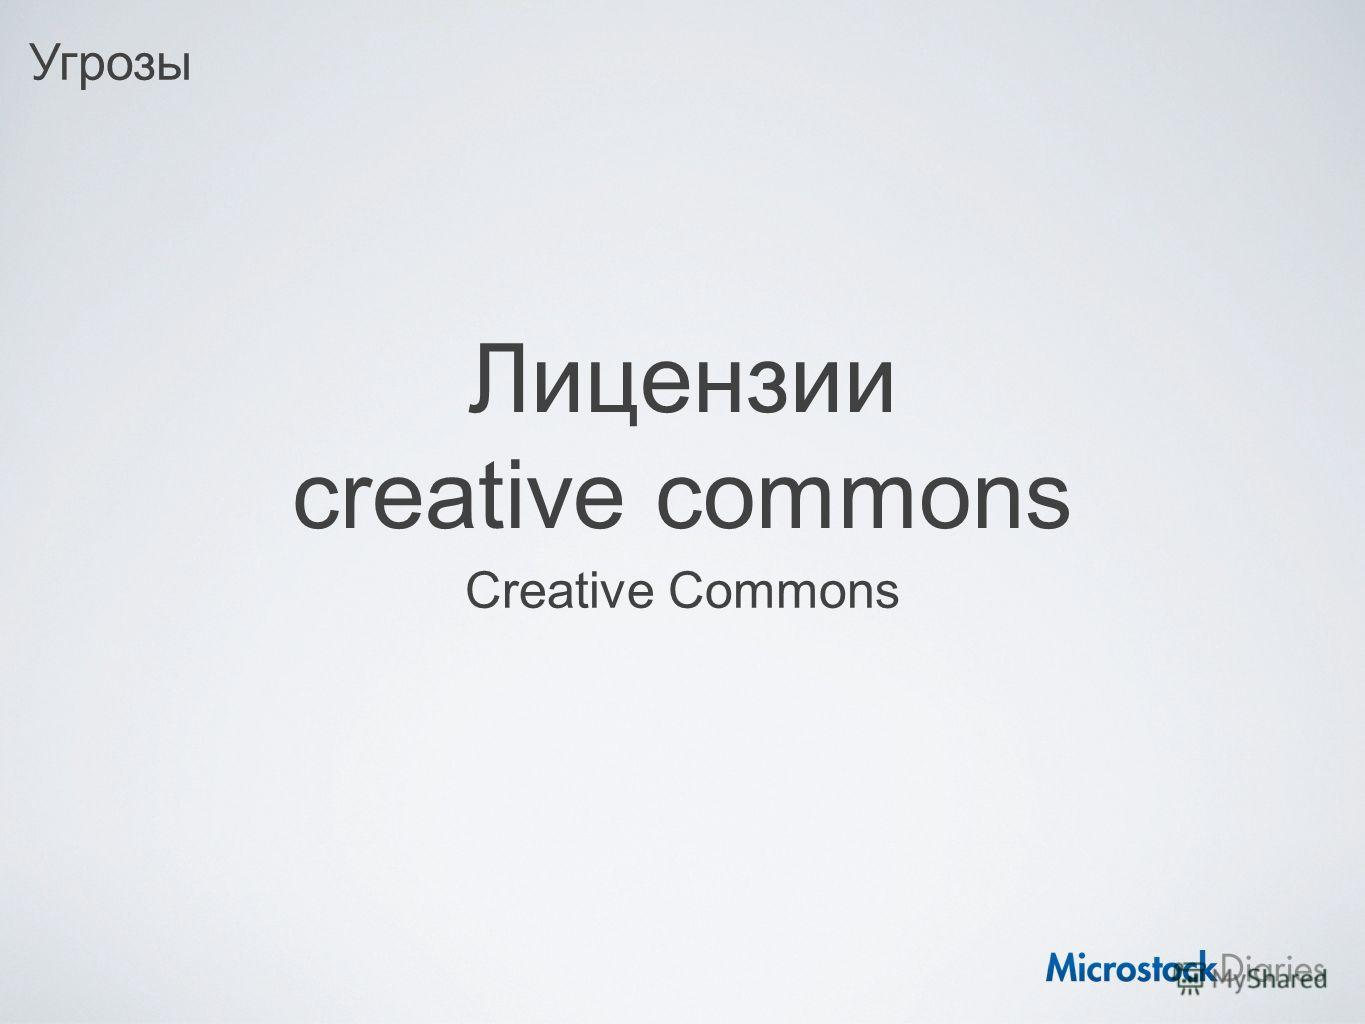 Лицензии creative commons Creative Commons Угрозы